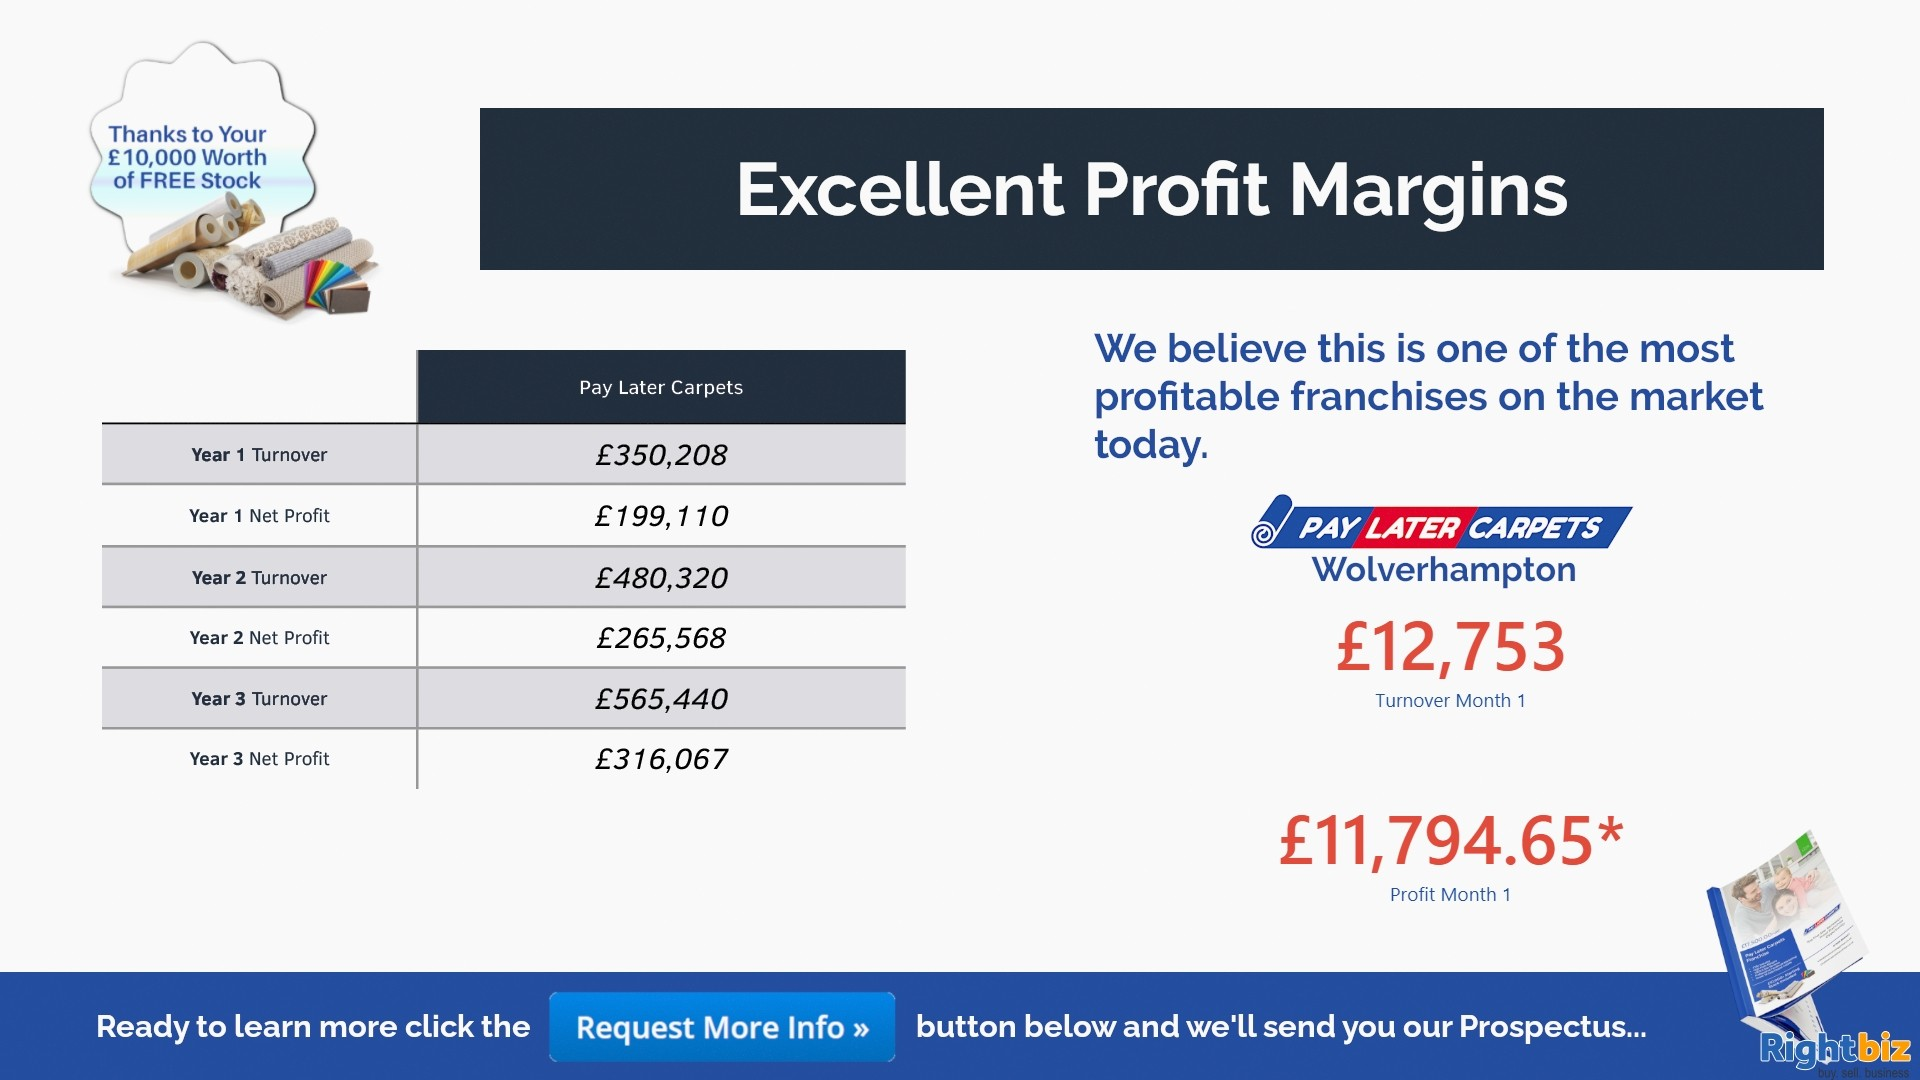 Pay Later Carpets Franchise St Asaph Our First Franchisee Made £11,000+ Profit in Month One - Image 3